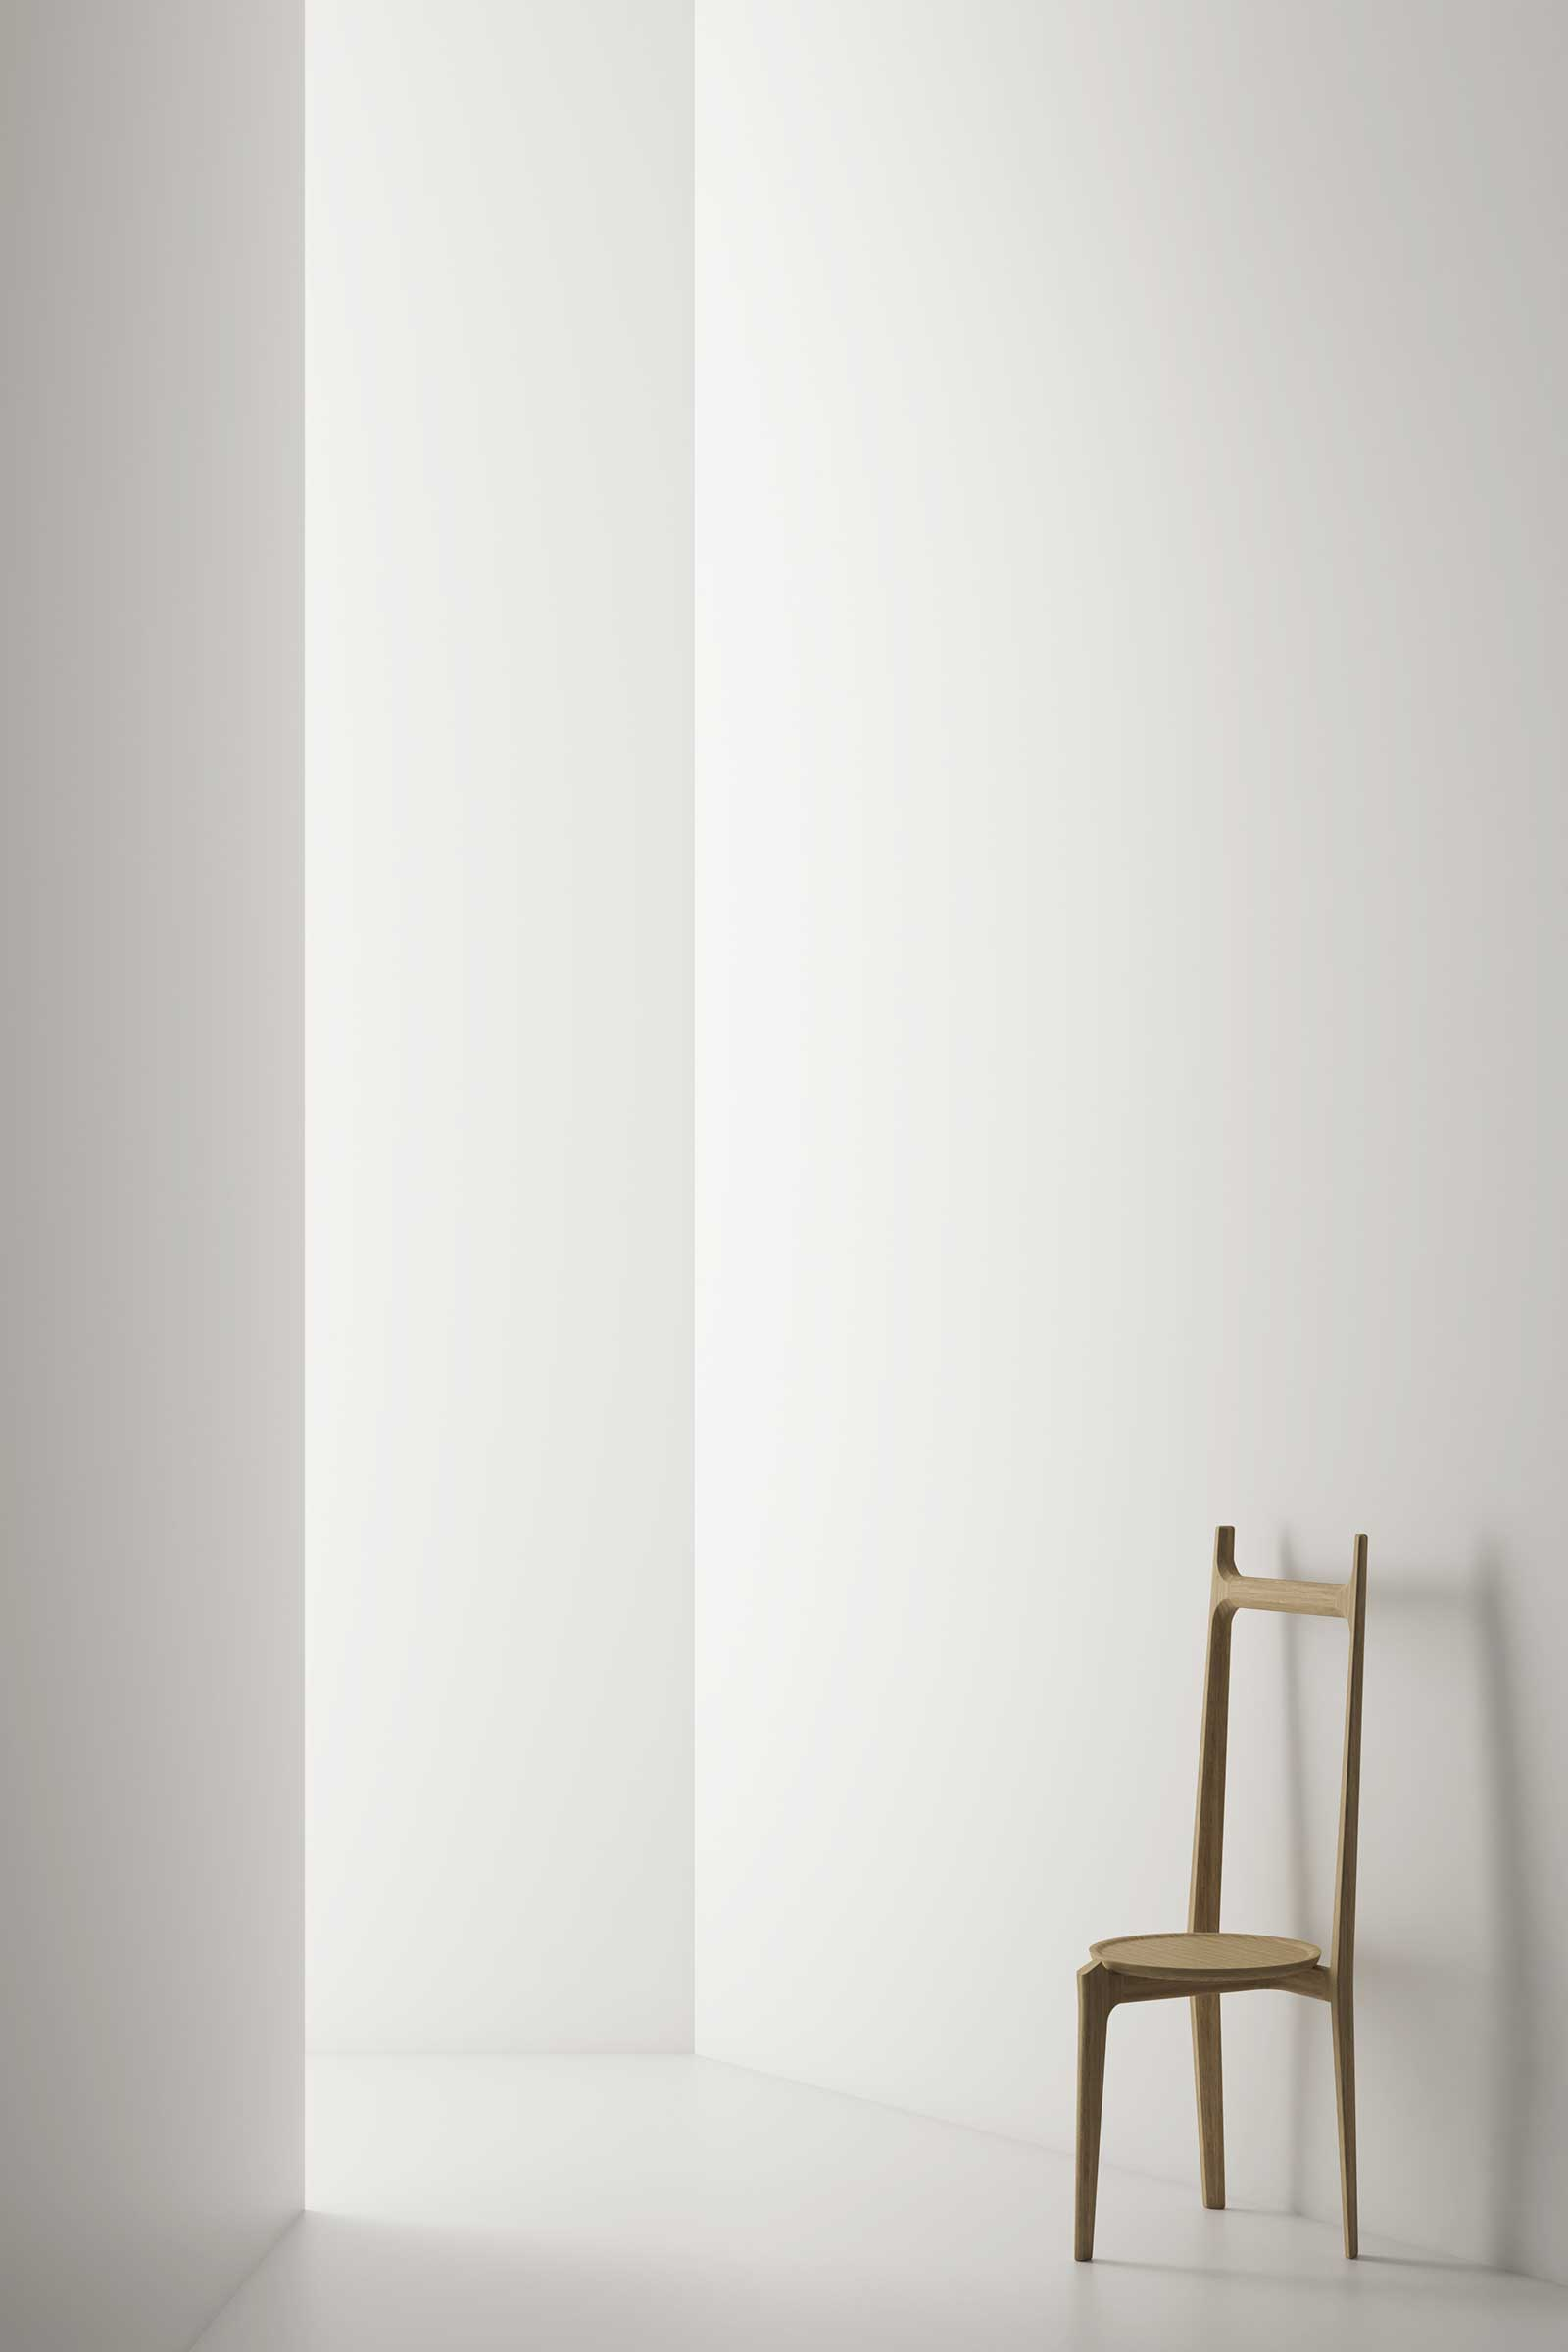 The Taylor collection for Stellar Works was among one of the studio's ranges launched at Salone del Mobile this year. Pictured here is the Taylor valet